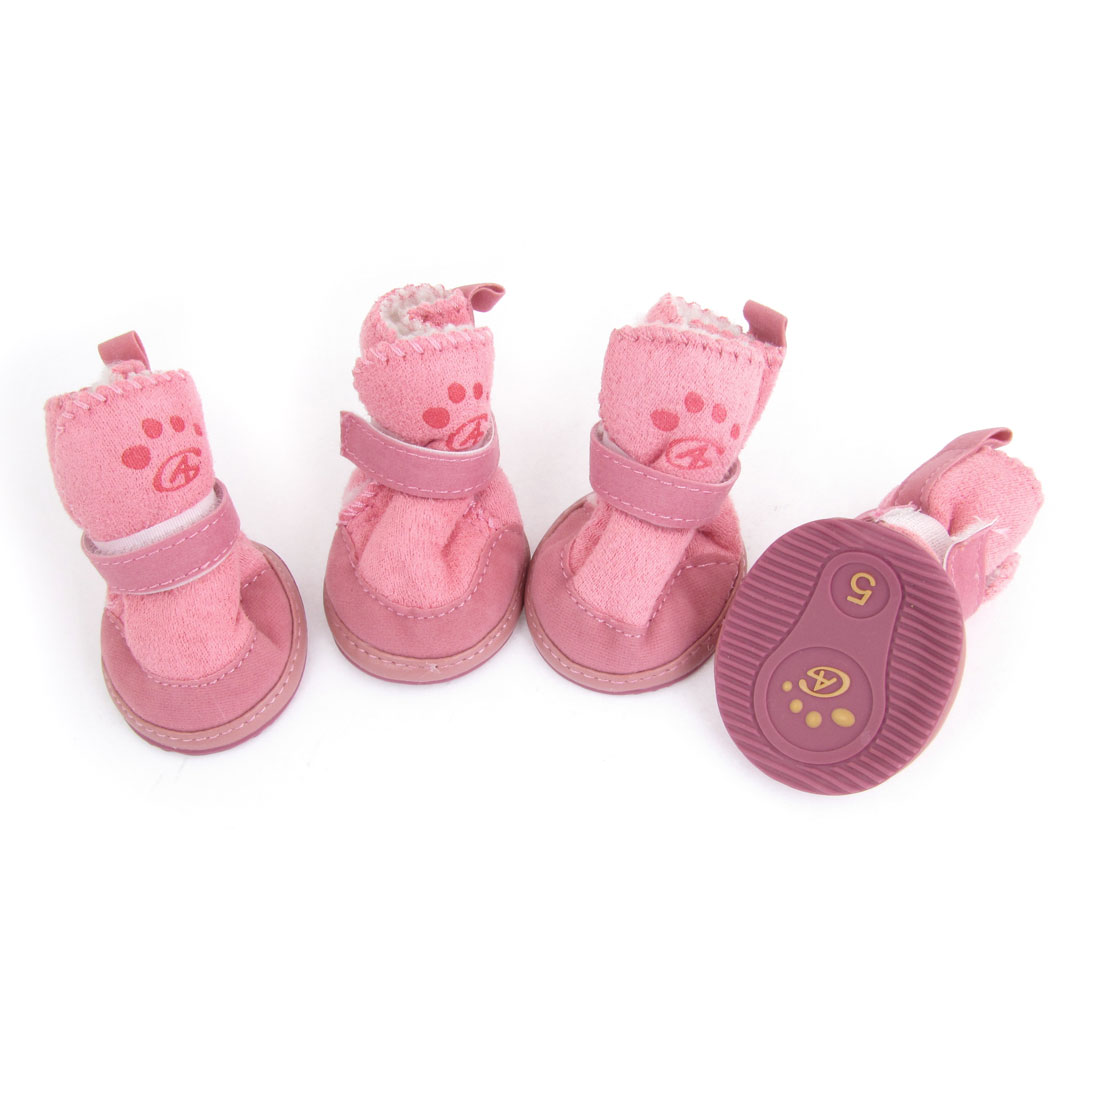 Size 5 Rubber Sole Doggy Dog Snow Boots Shaped Shoes Pink 4 Pcs